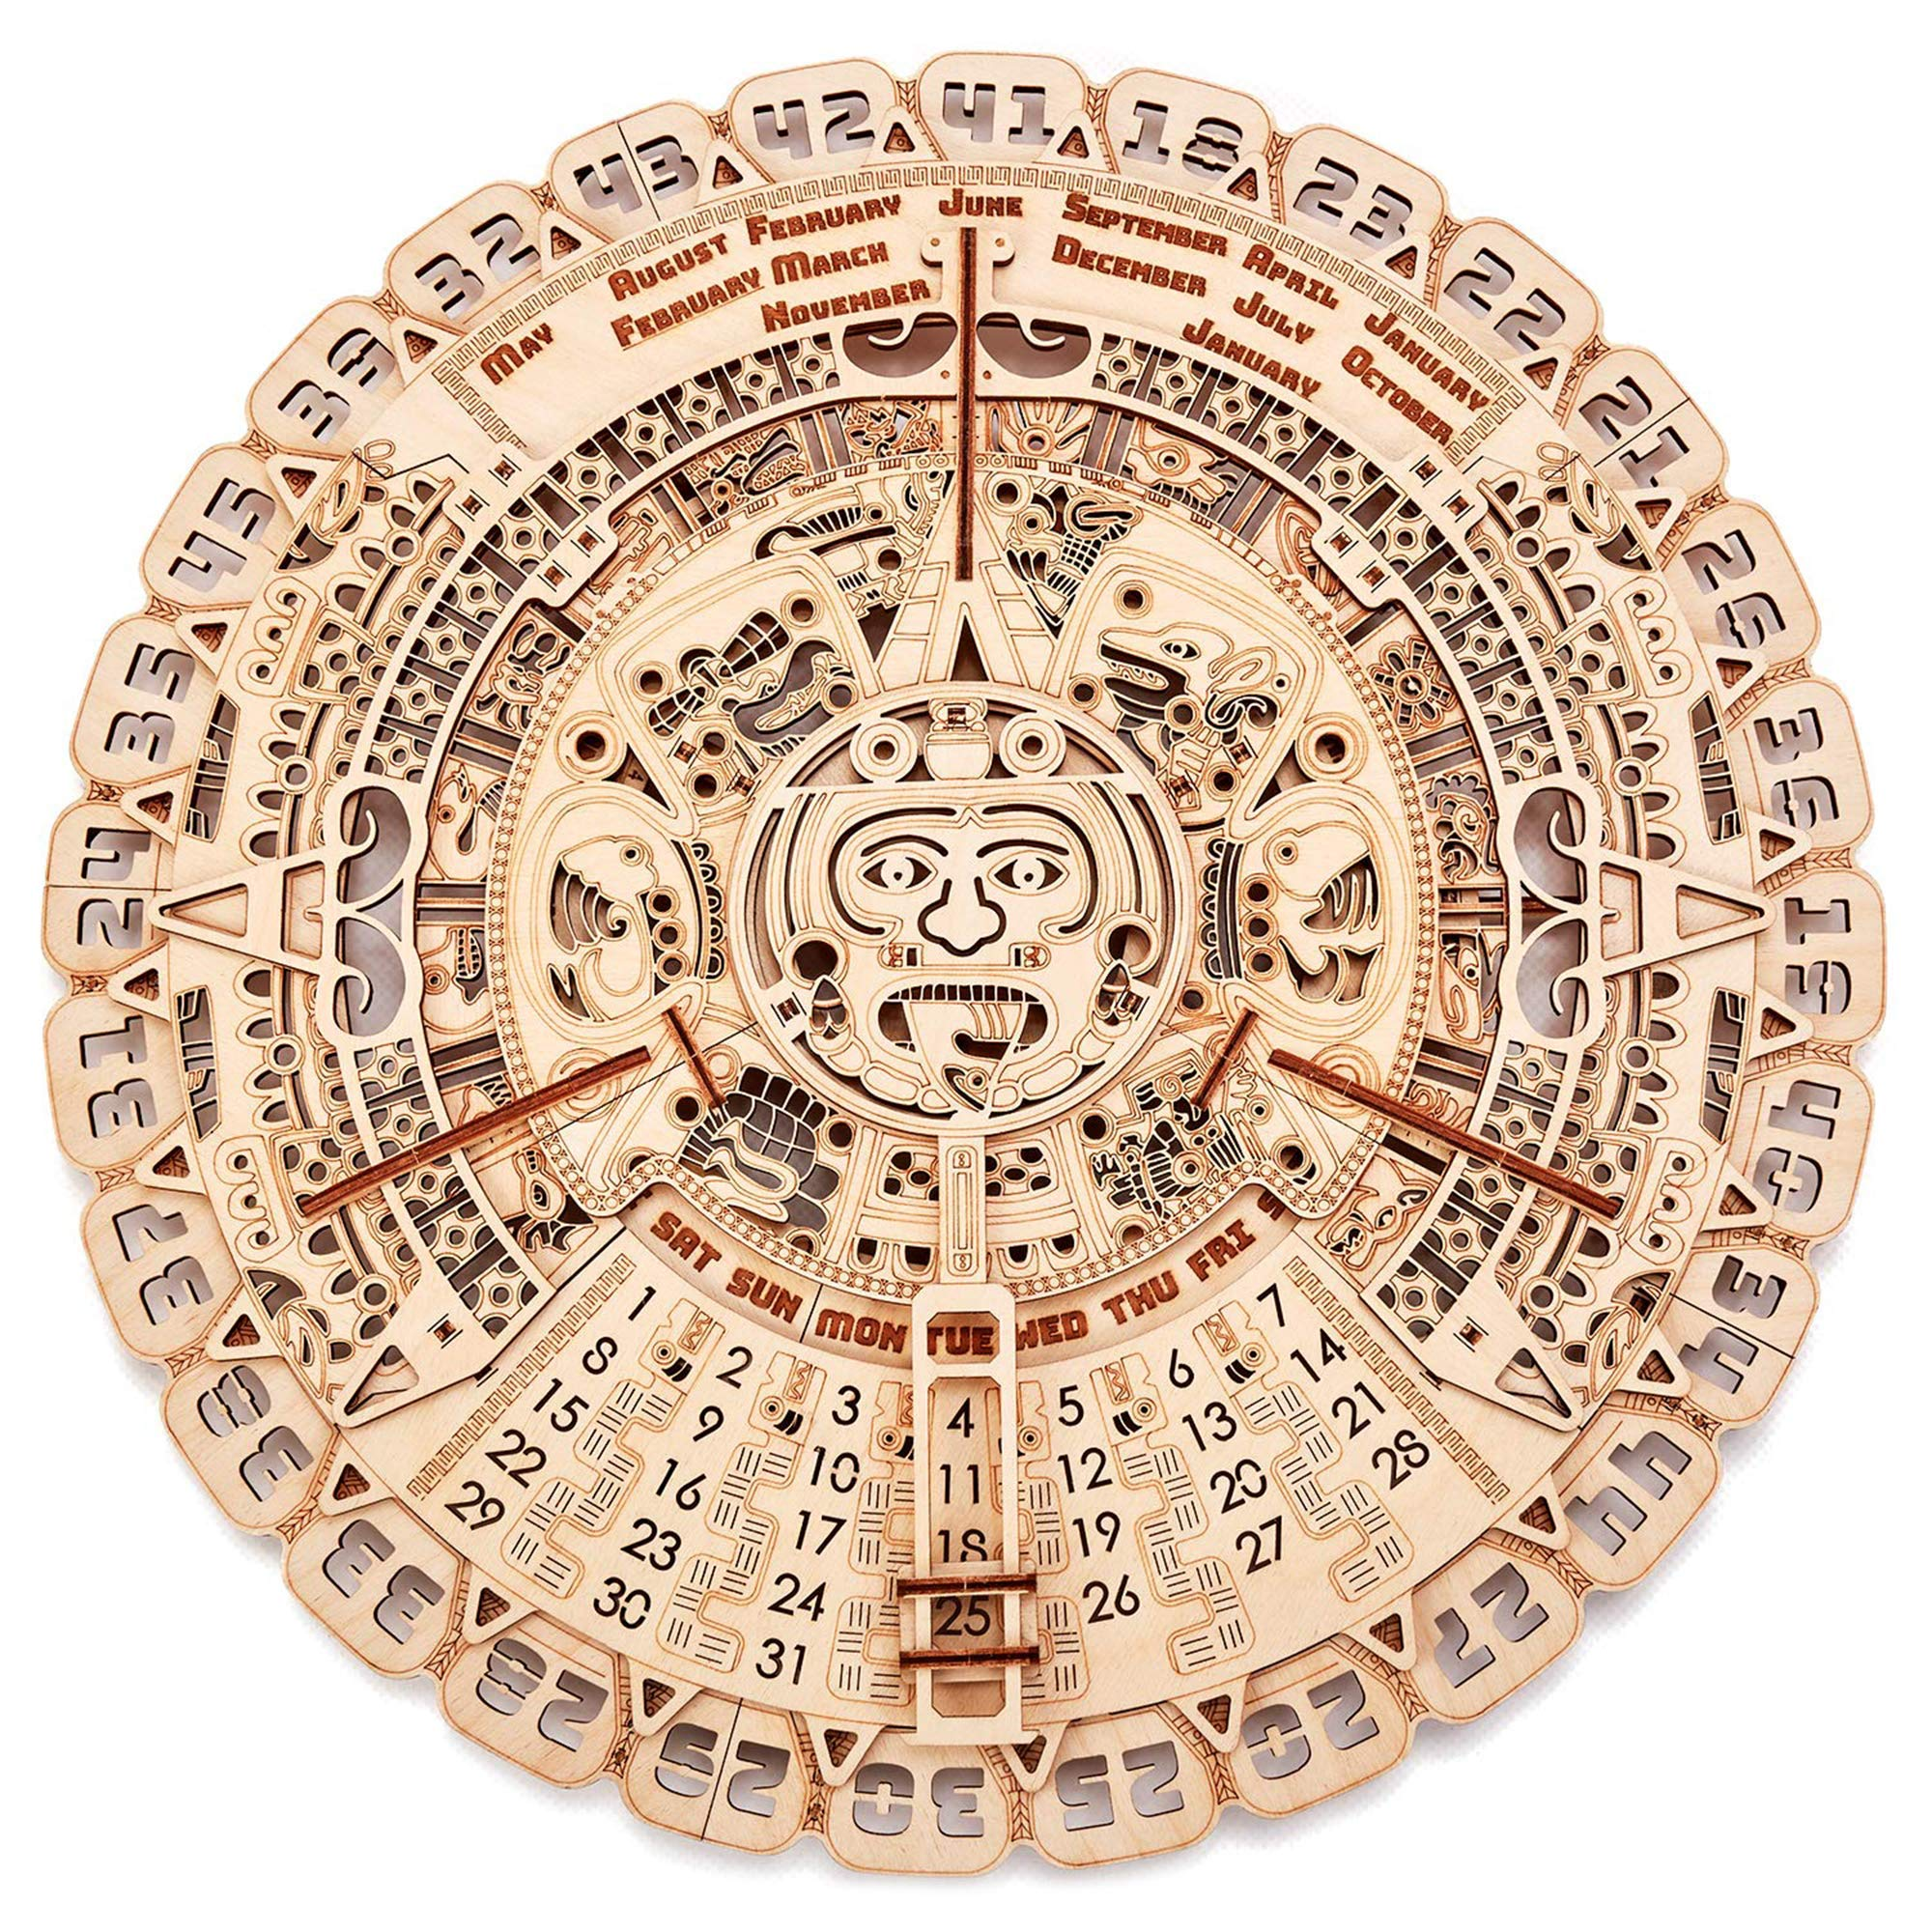 Wood Trick Mayan Wall Calendar Wooden Mechanical Model - 16.1x16.1″ - 3D Wooden Puzzle, Assembly Constructor, Brain Teaser for Adults and Kids, Best DIY Toy, Eco Wooden Toys - Aztec Calendar by Wood Trick